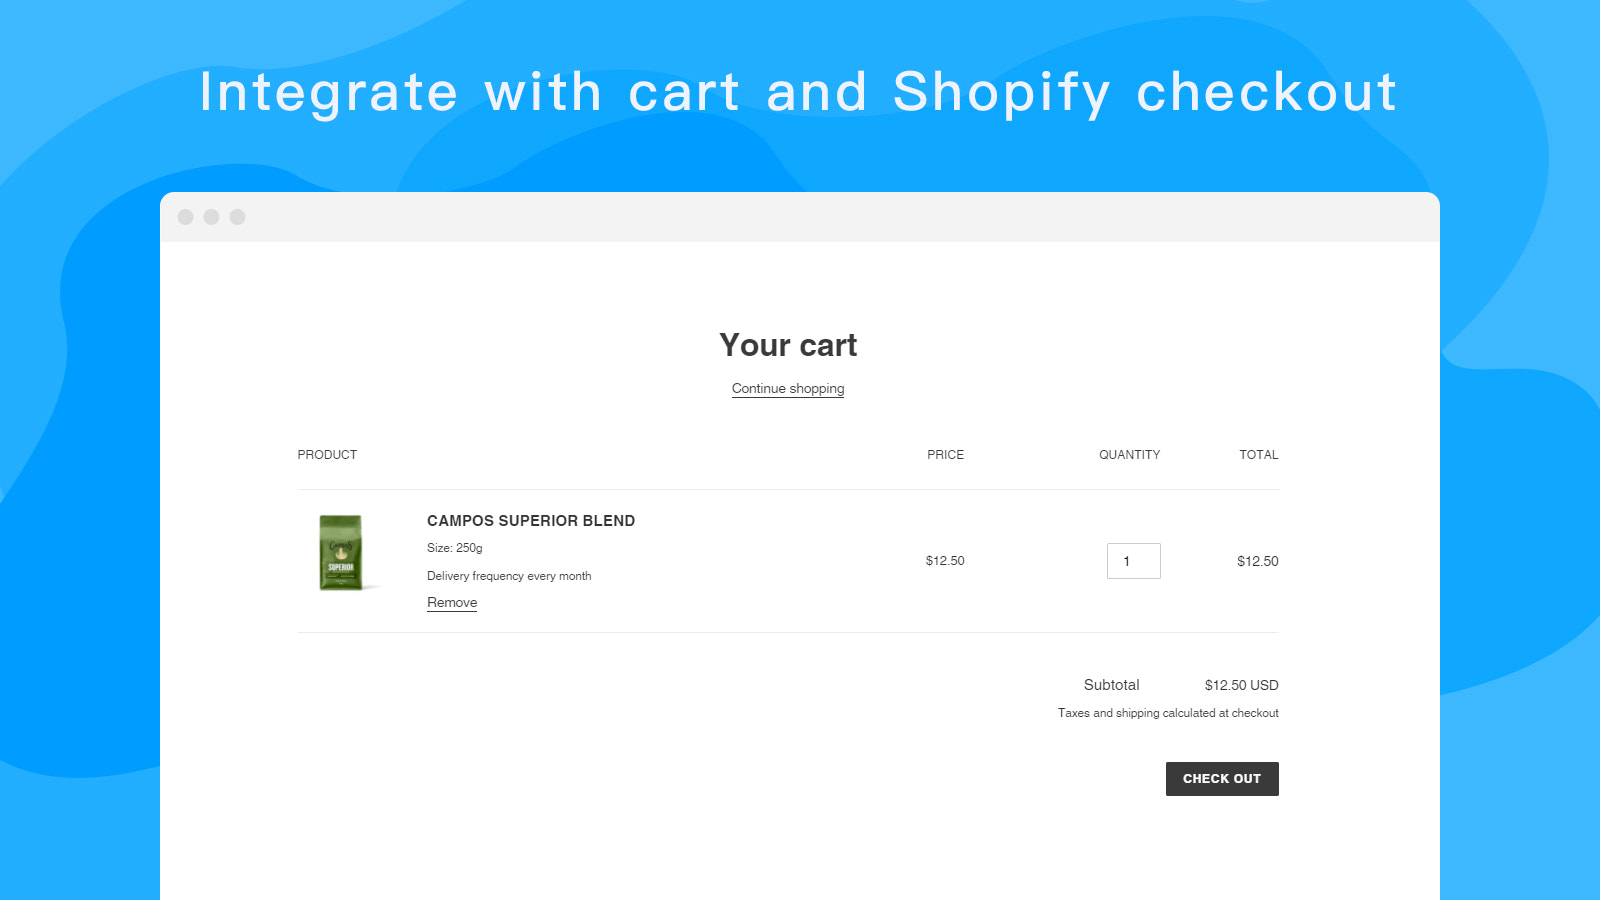 Integrate with cart and Shopify checkout